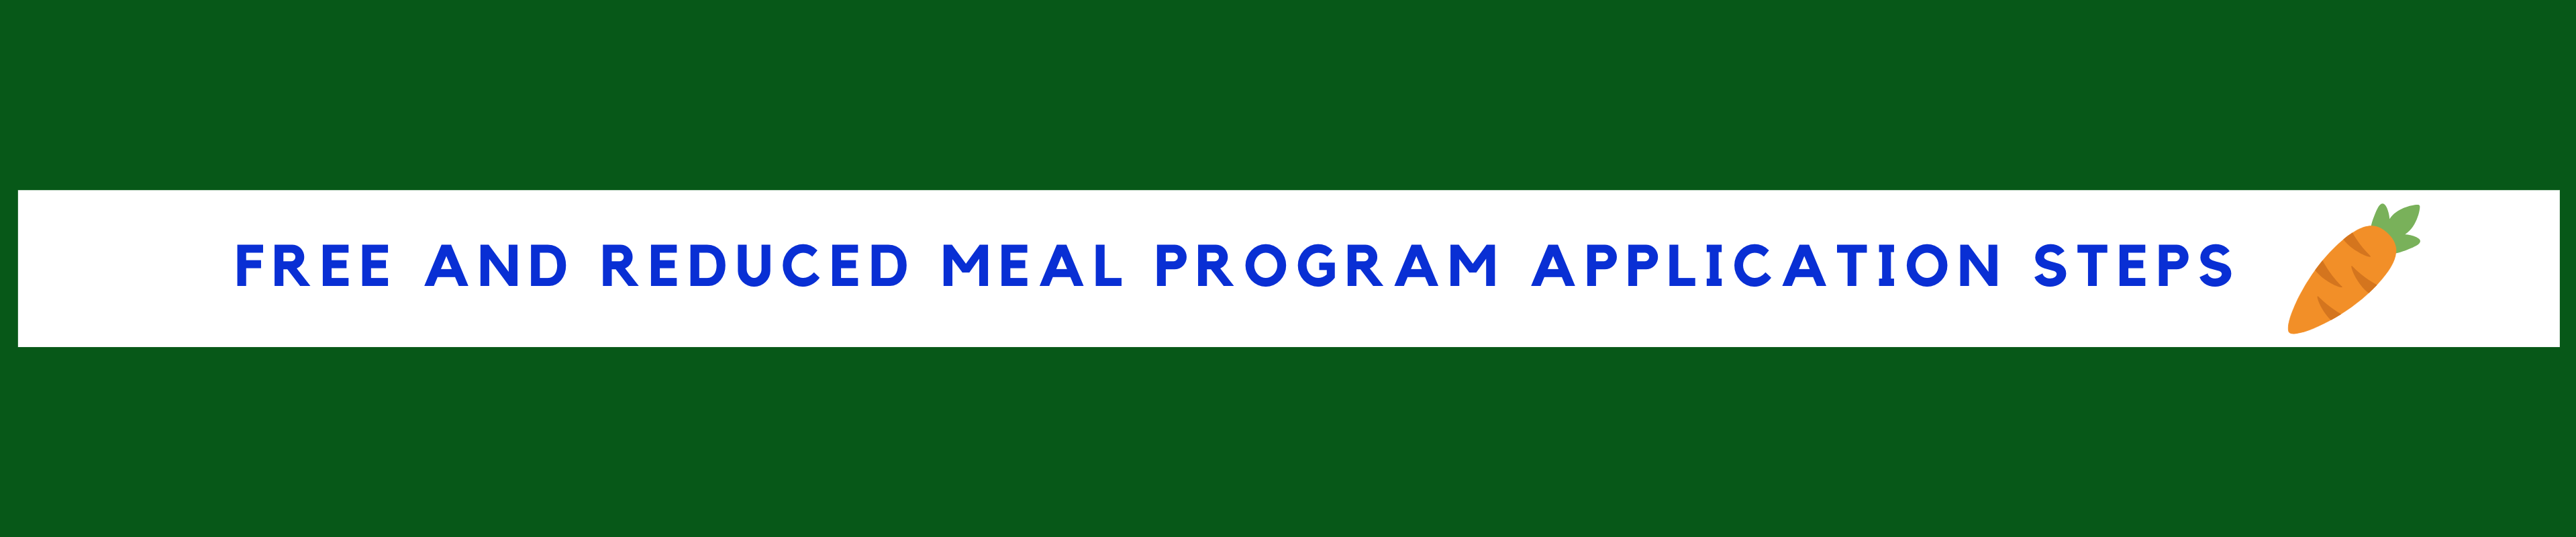 Free and Reduced Meal Program Application Steps